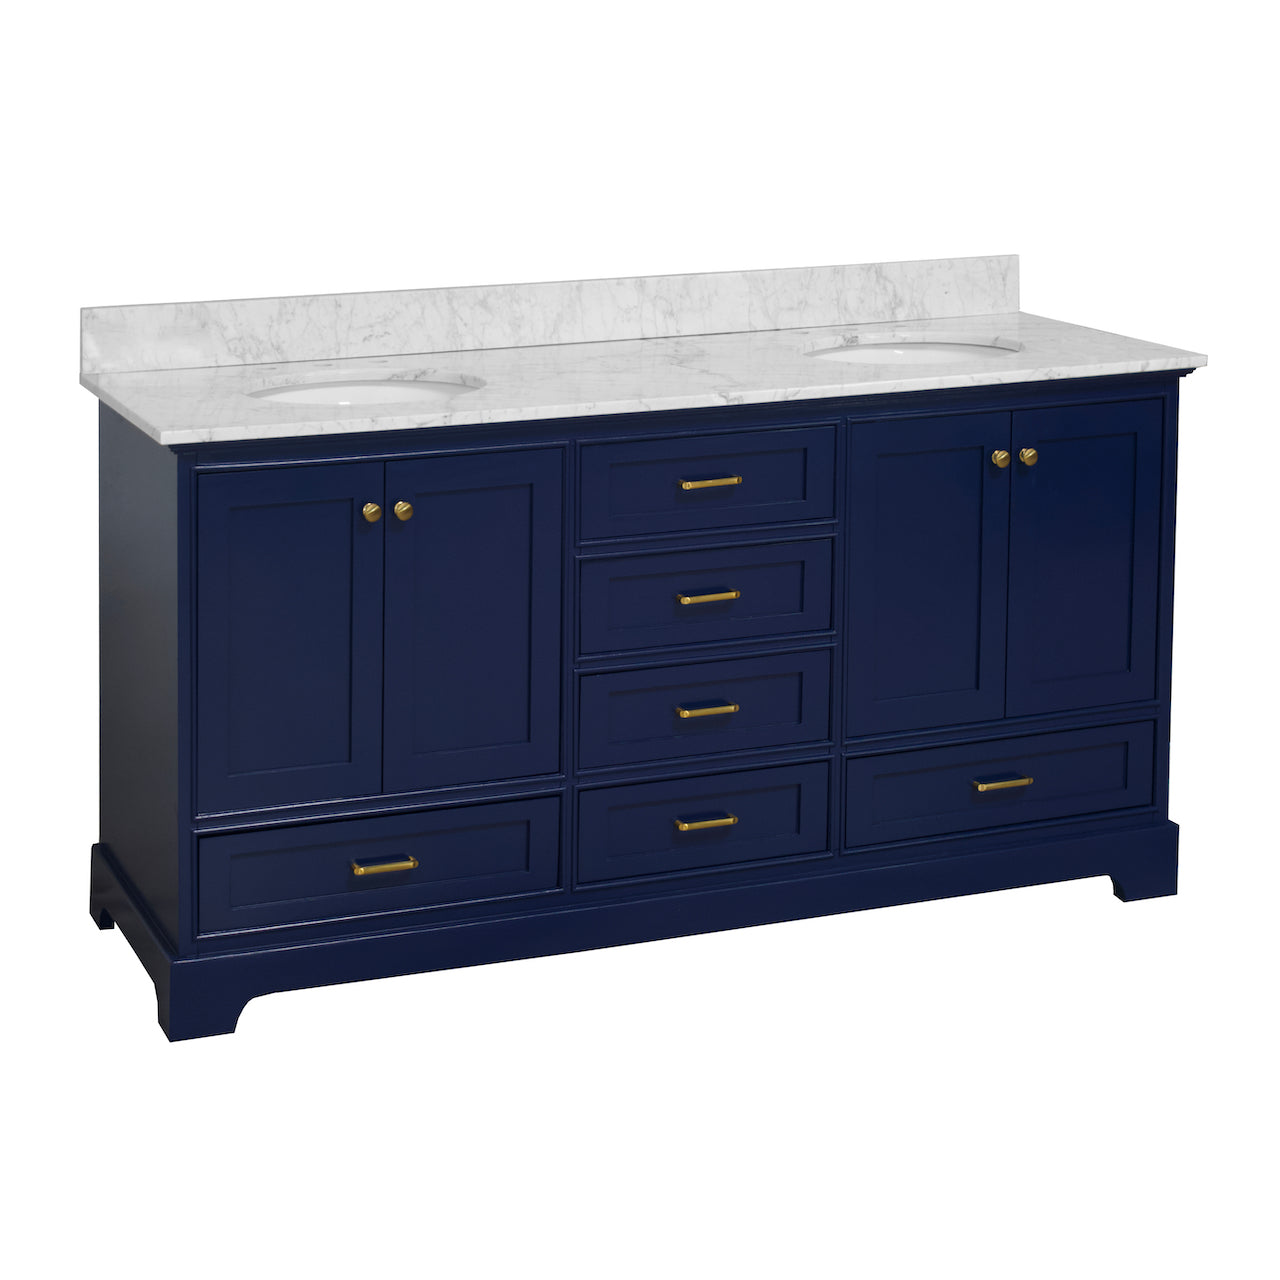 Harper 72-inch Double Sink Bathroom Vanity Royal Blue Carrara Marble Top